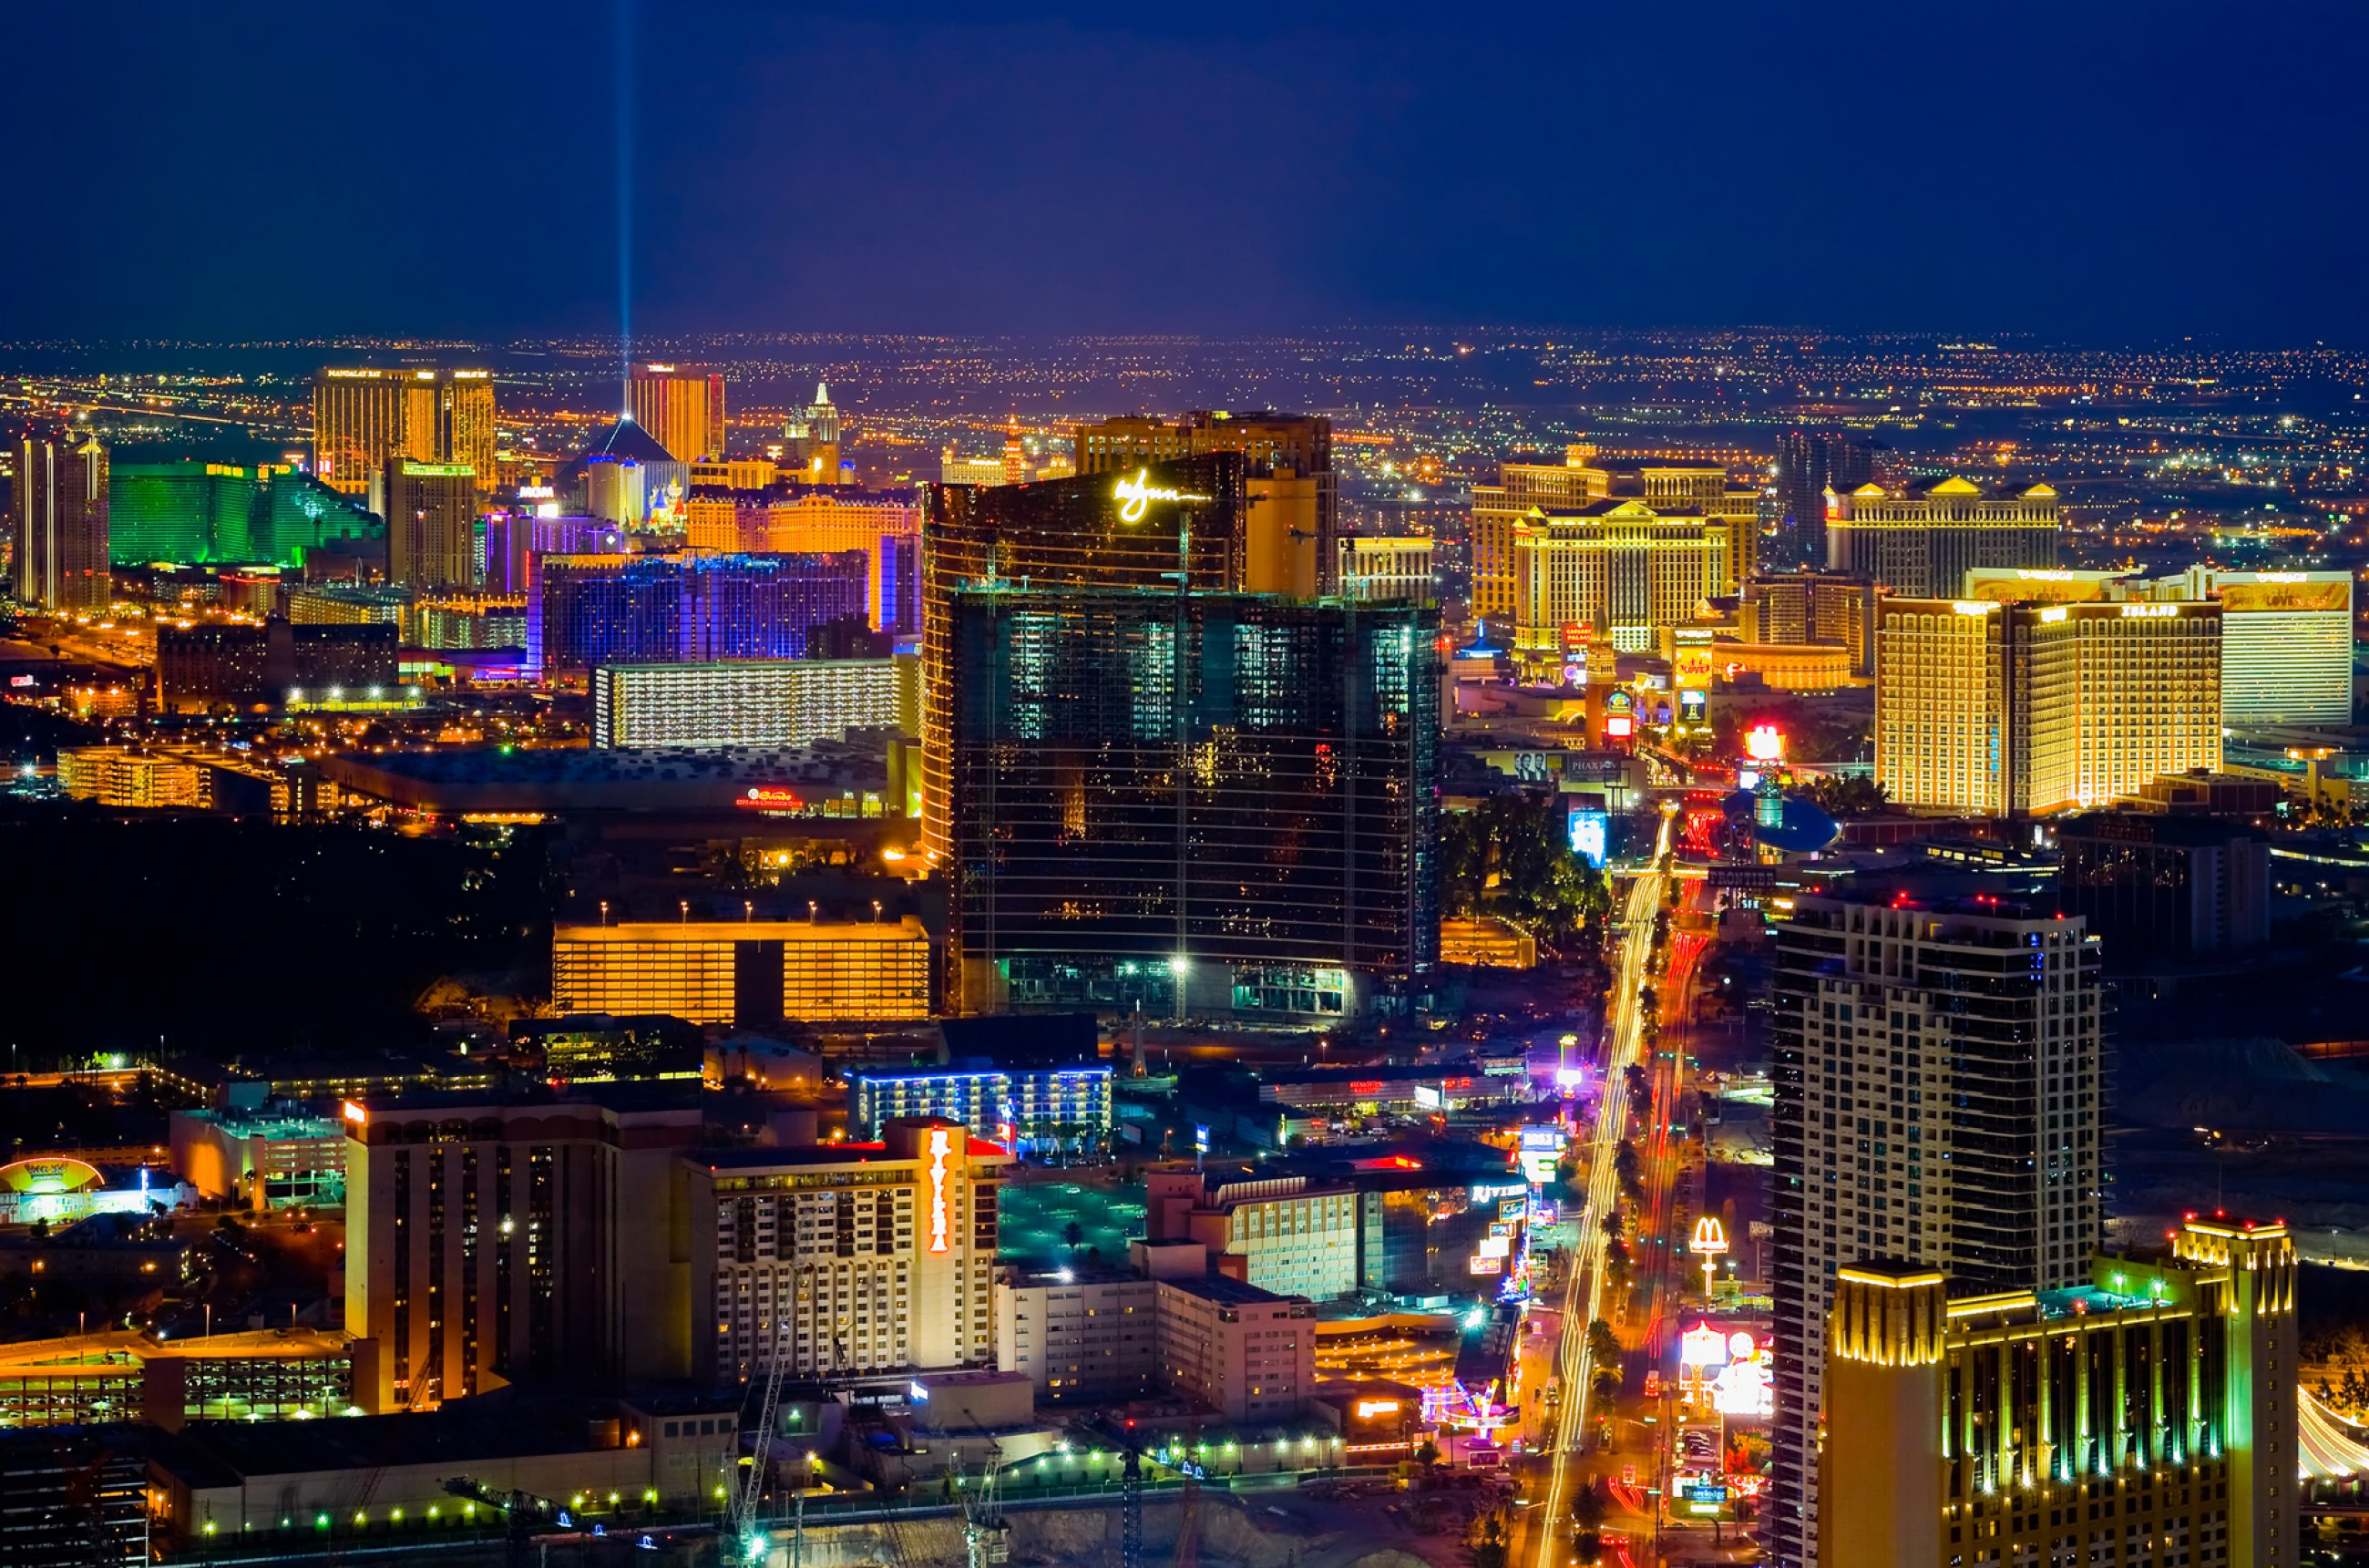 https://bubo.sk/uploads/galleries/4996/lv-las-vegas-las-vegas-from-above-at-night.jpg